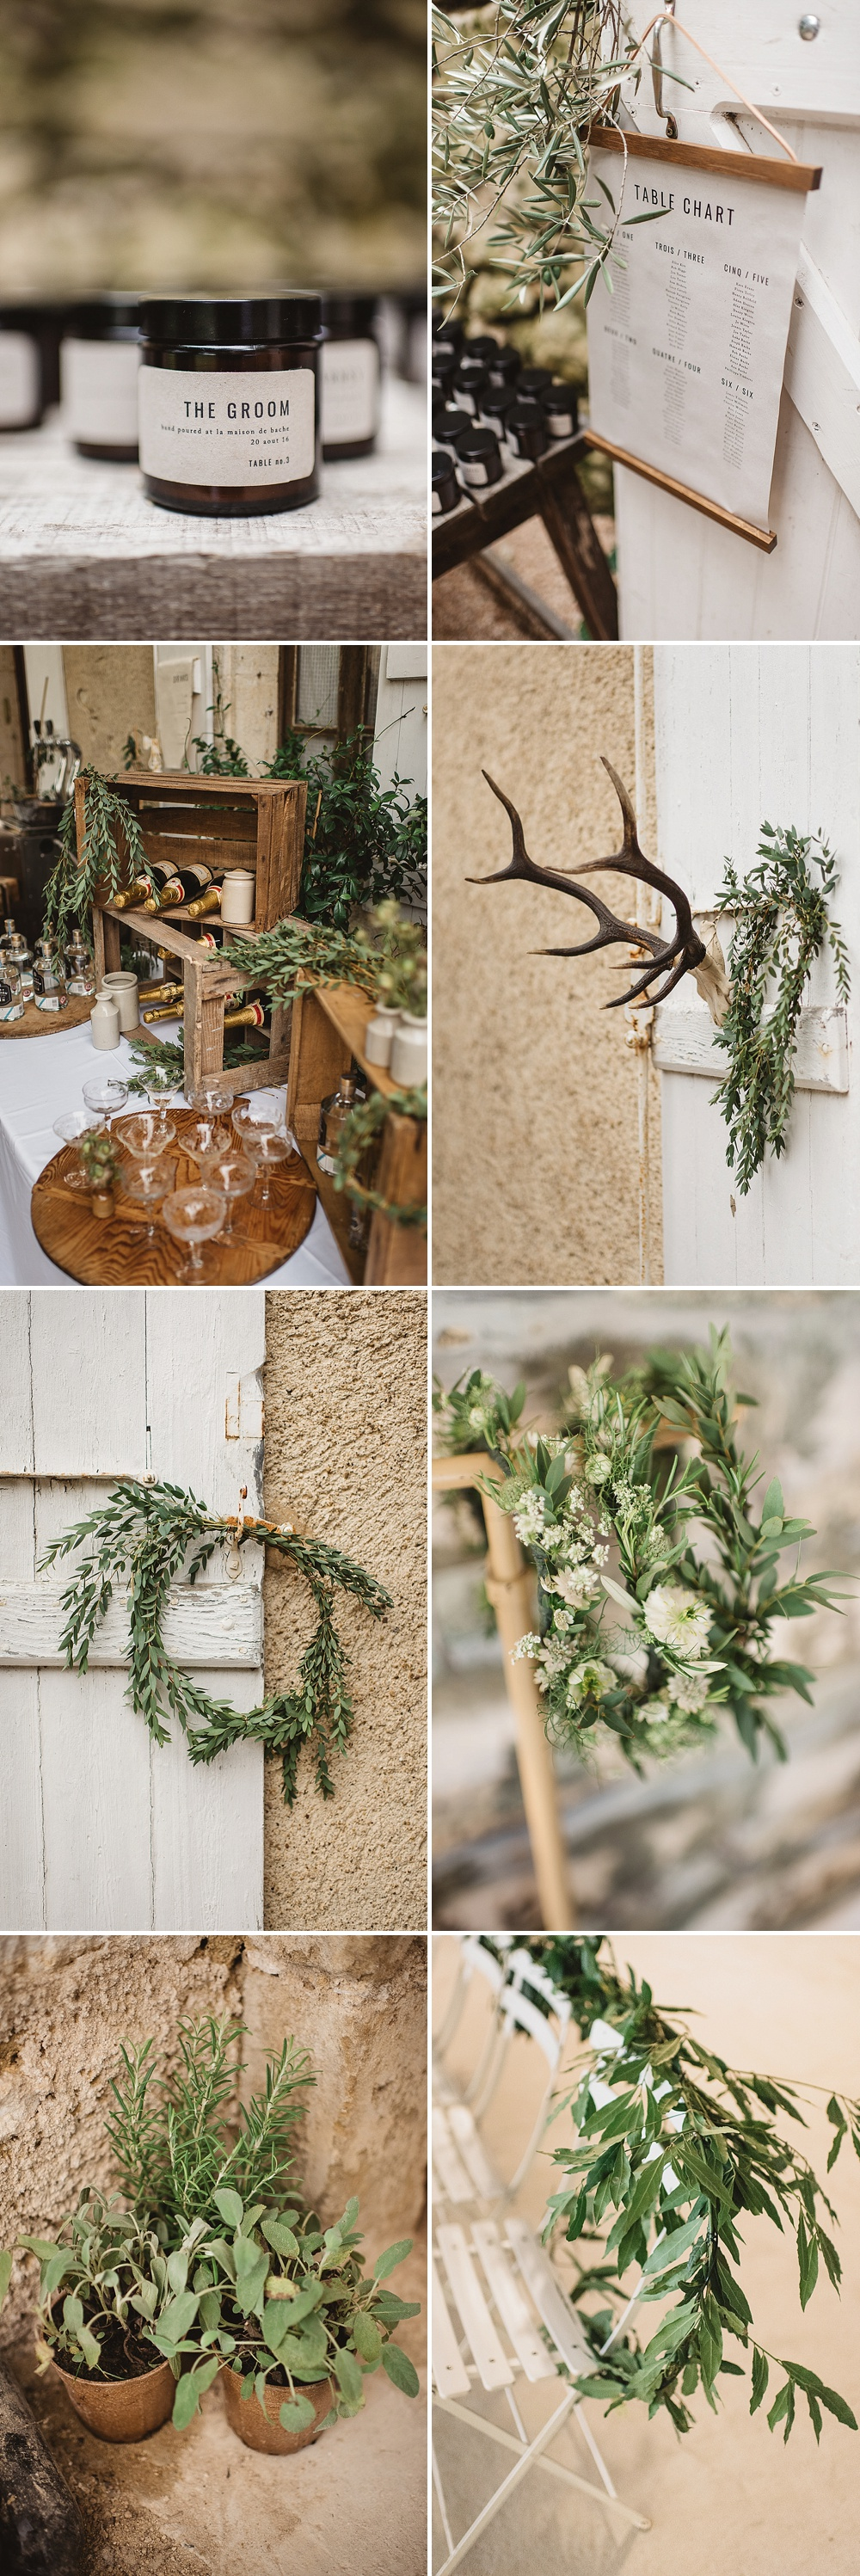 Rustic French Wedding // Greenery Inspired Wedding // Styling & Prop Hire Another Story Studio